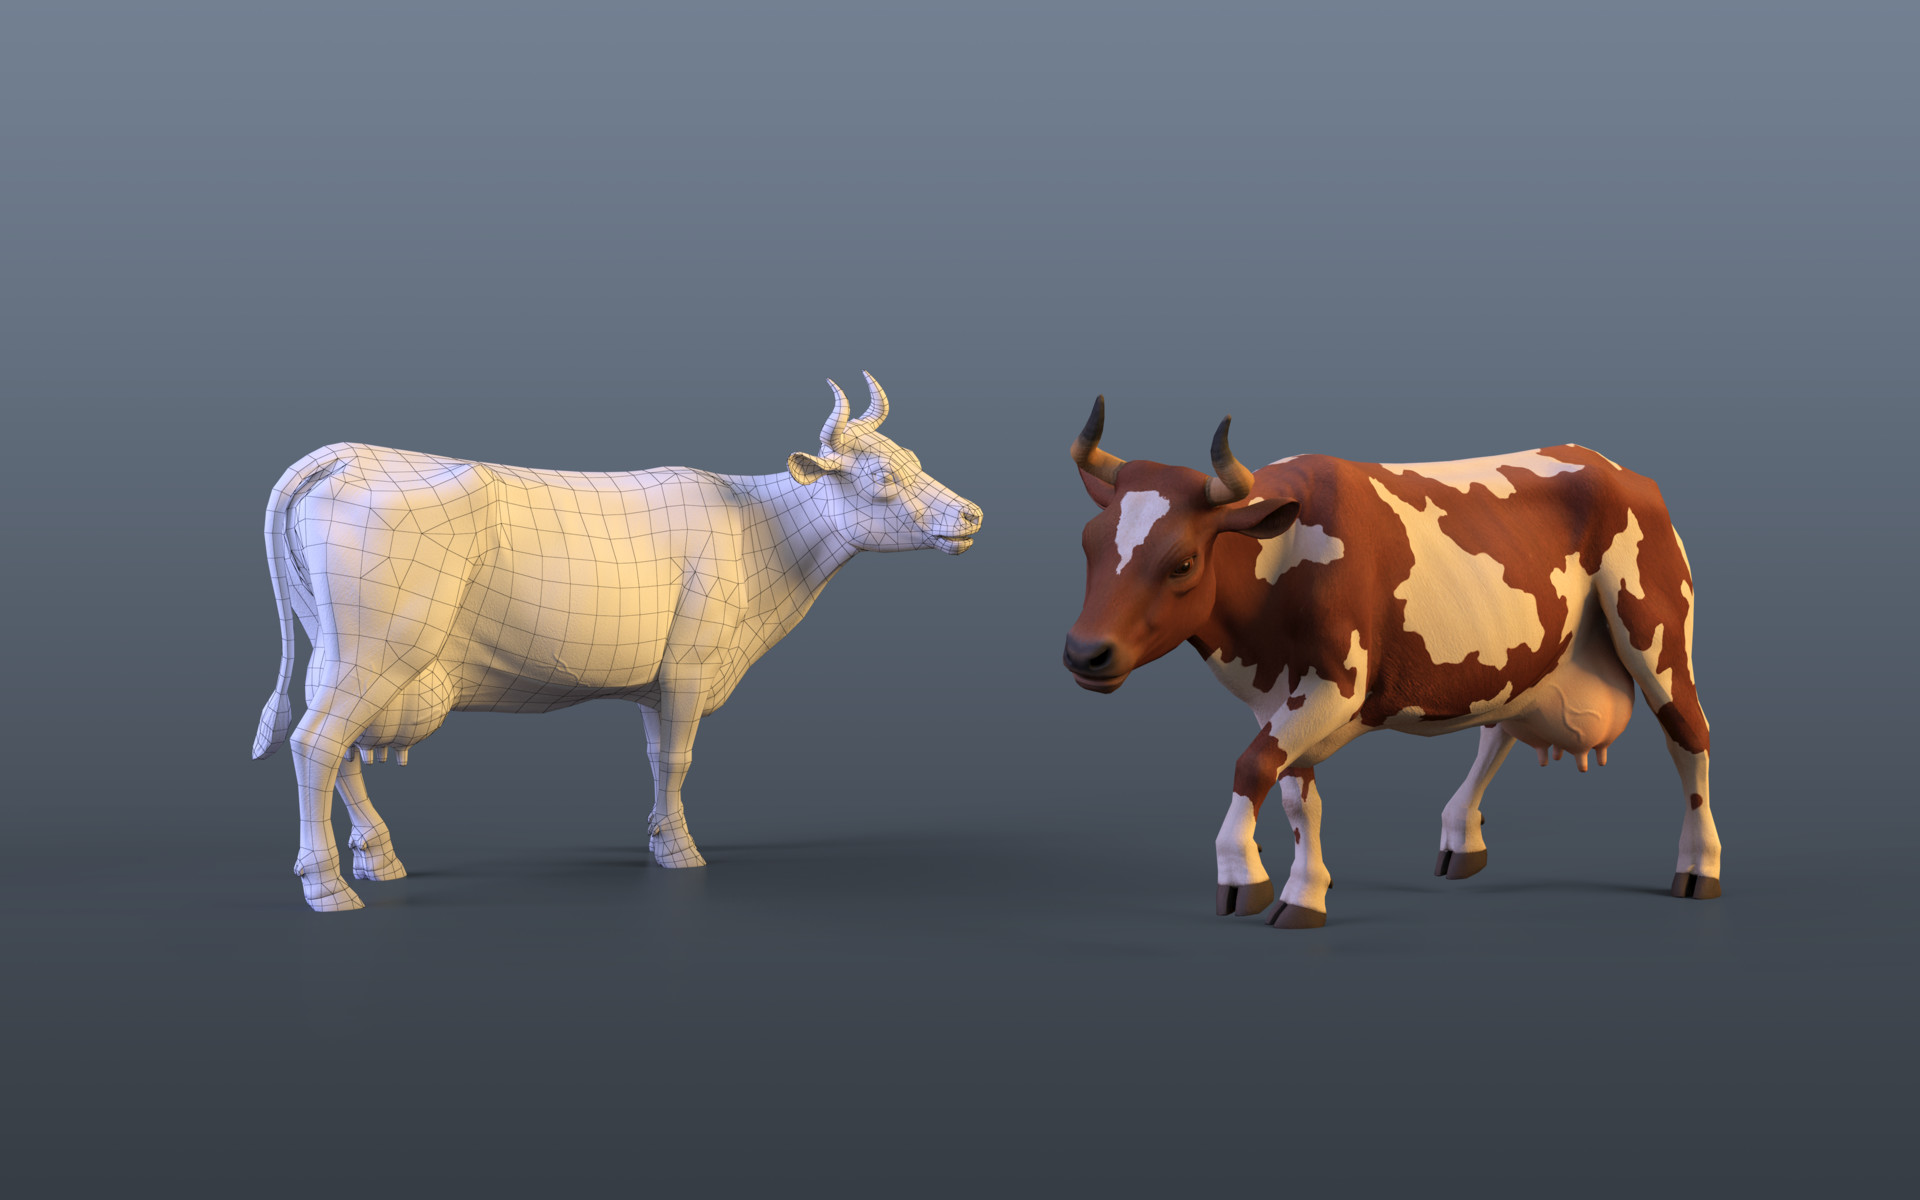 sergey-abanin-cow-low-poly | 3d artist